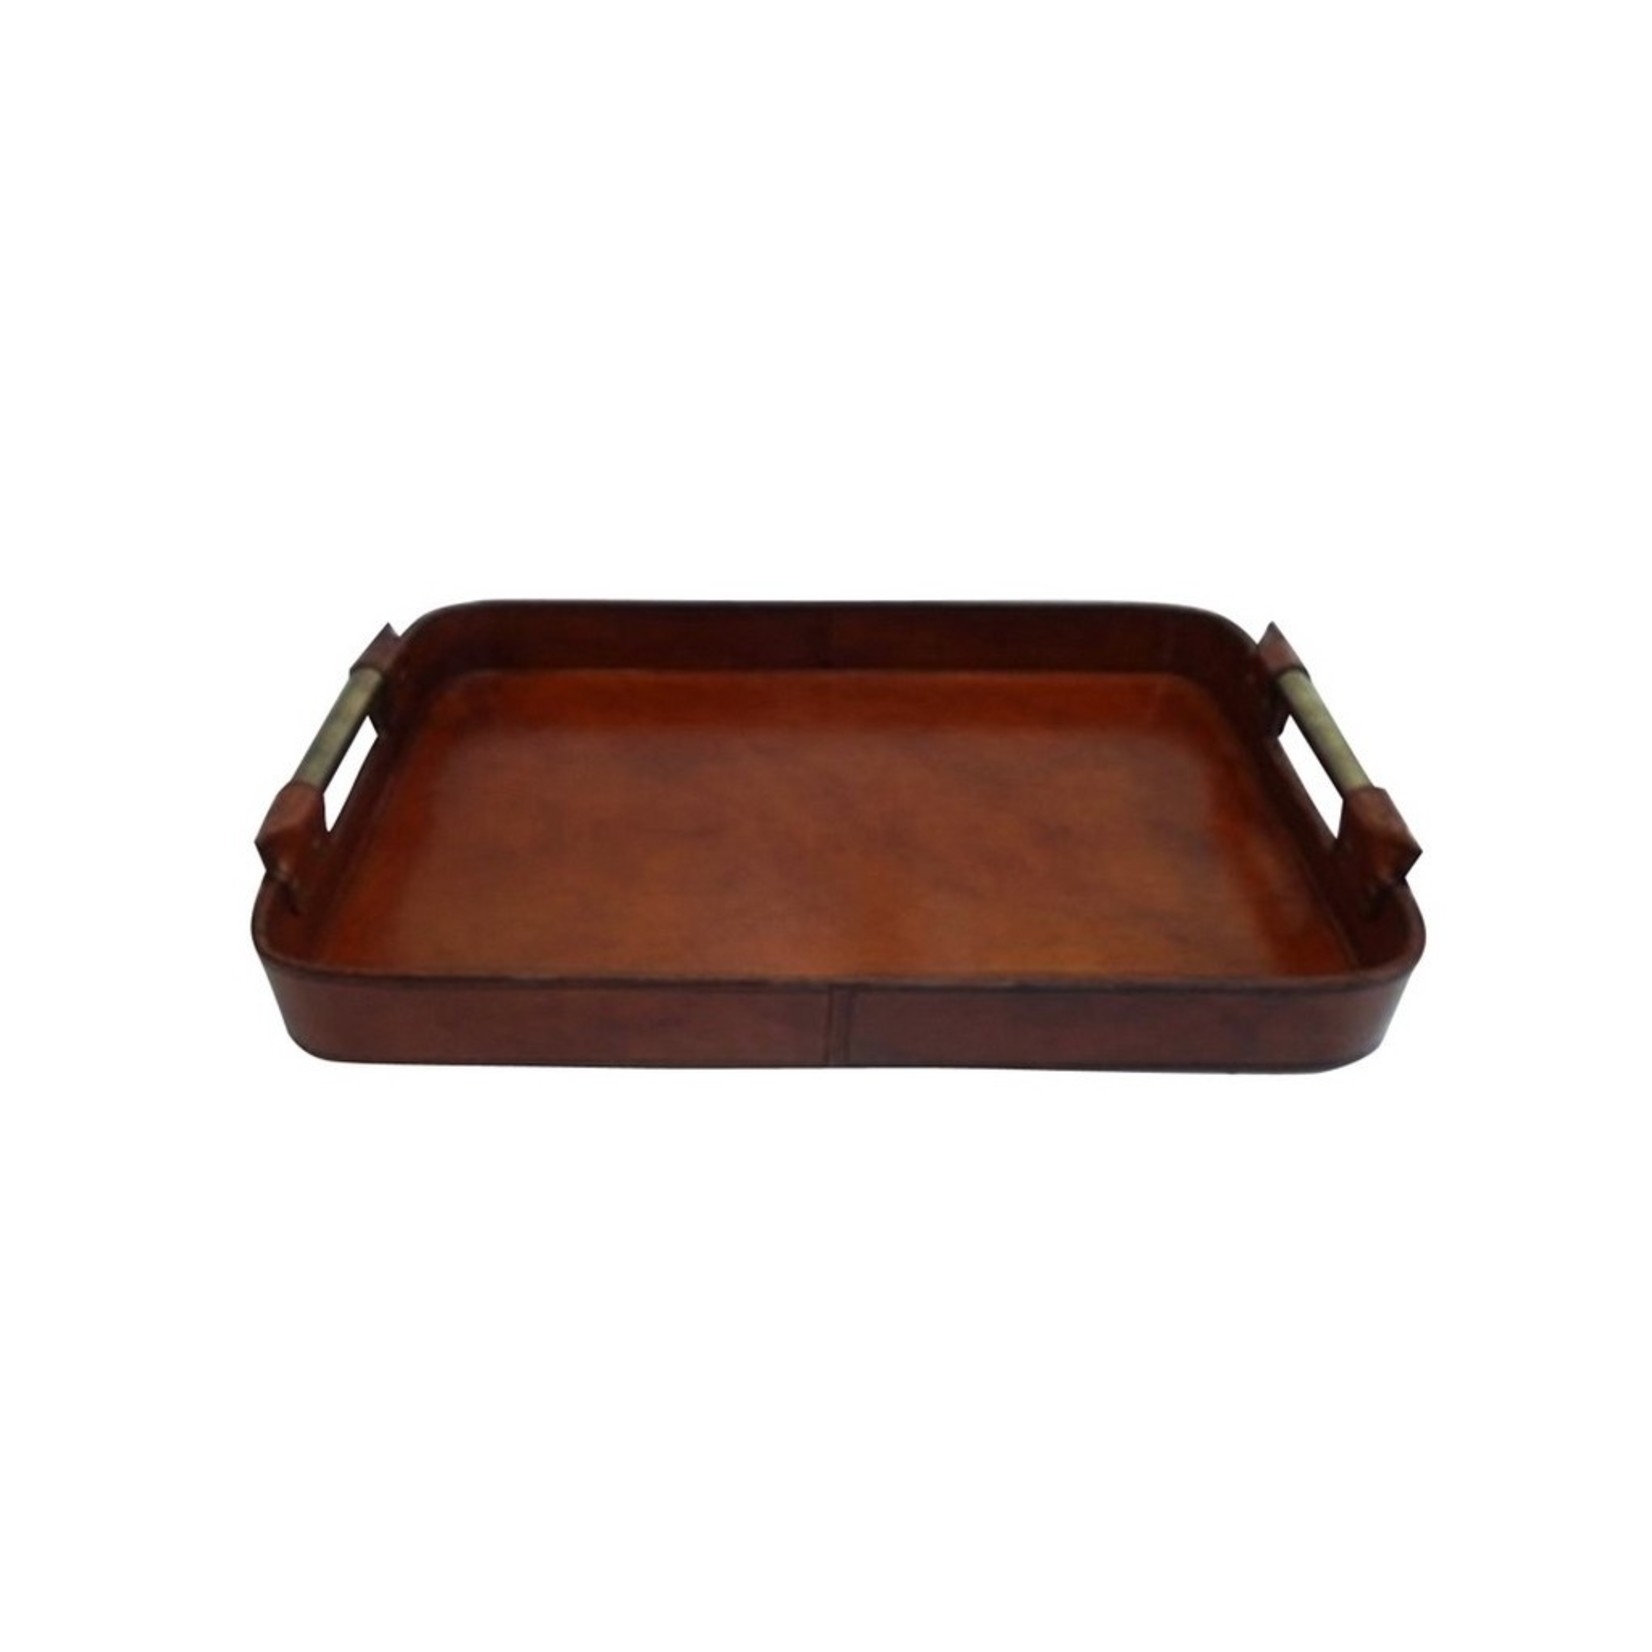 CC Interiors Leather Tray with Brass Handles